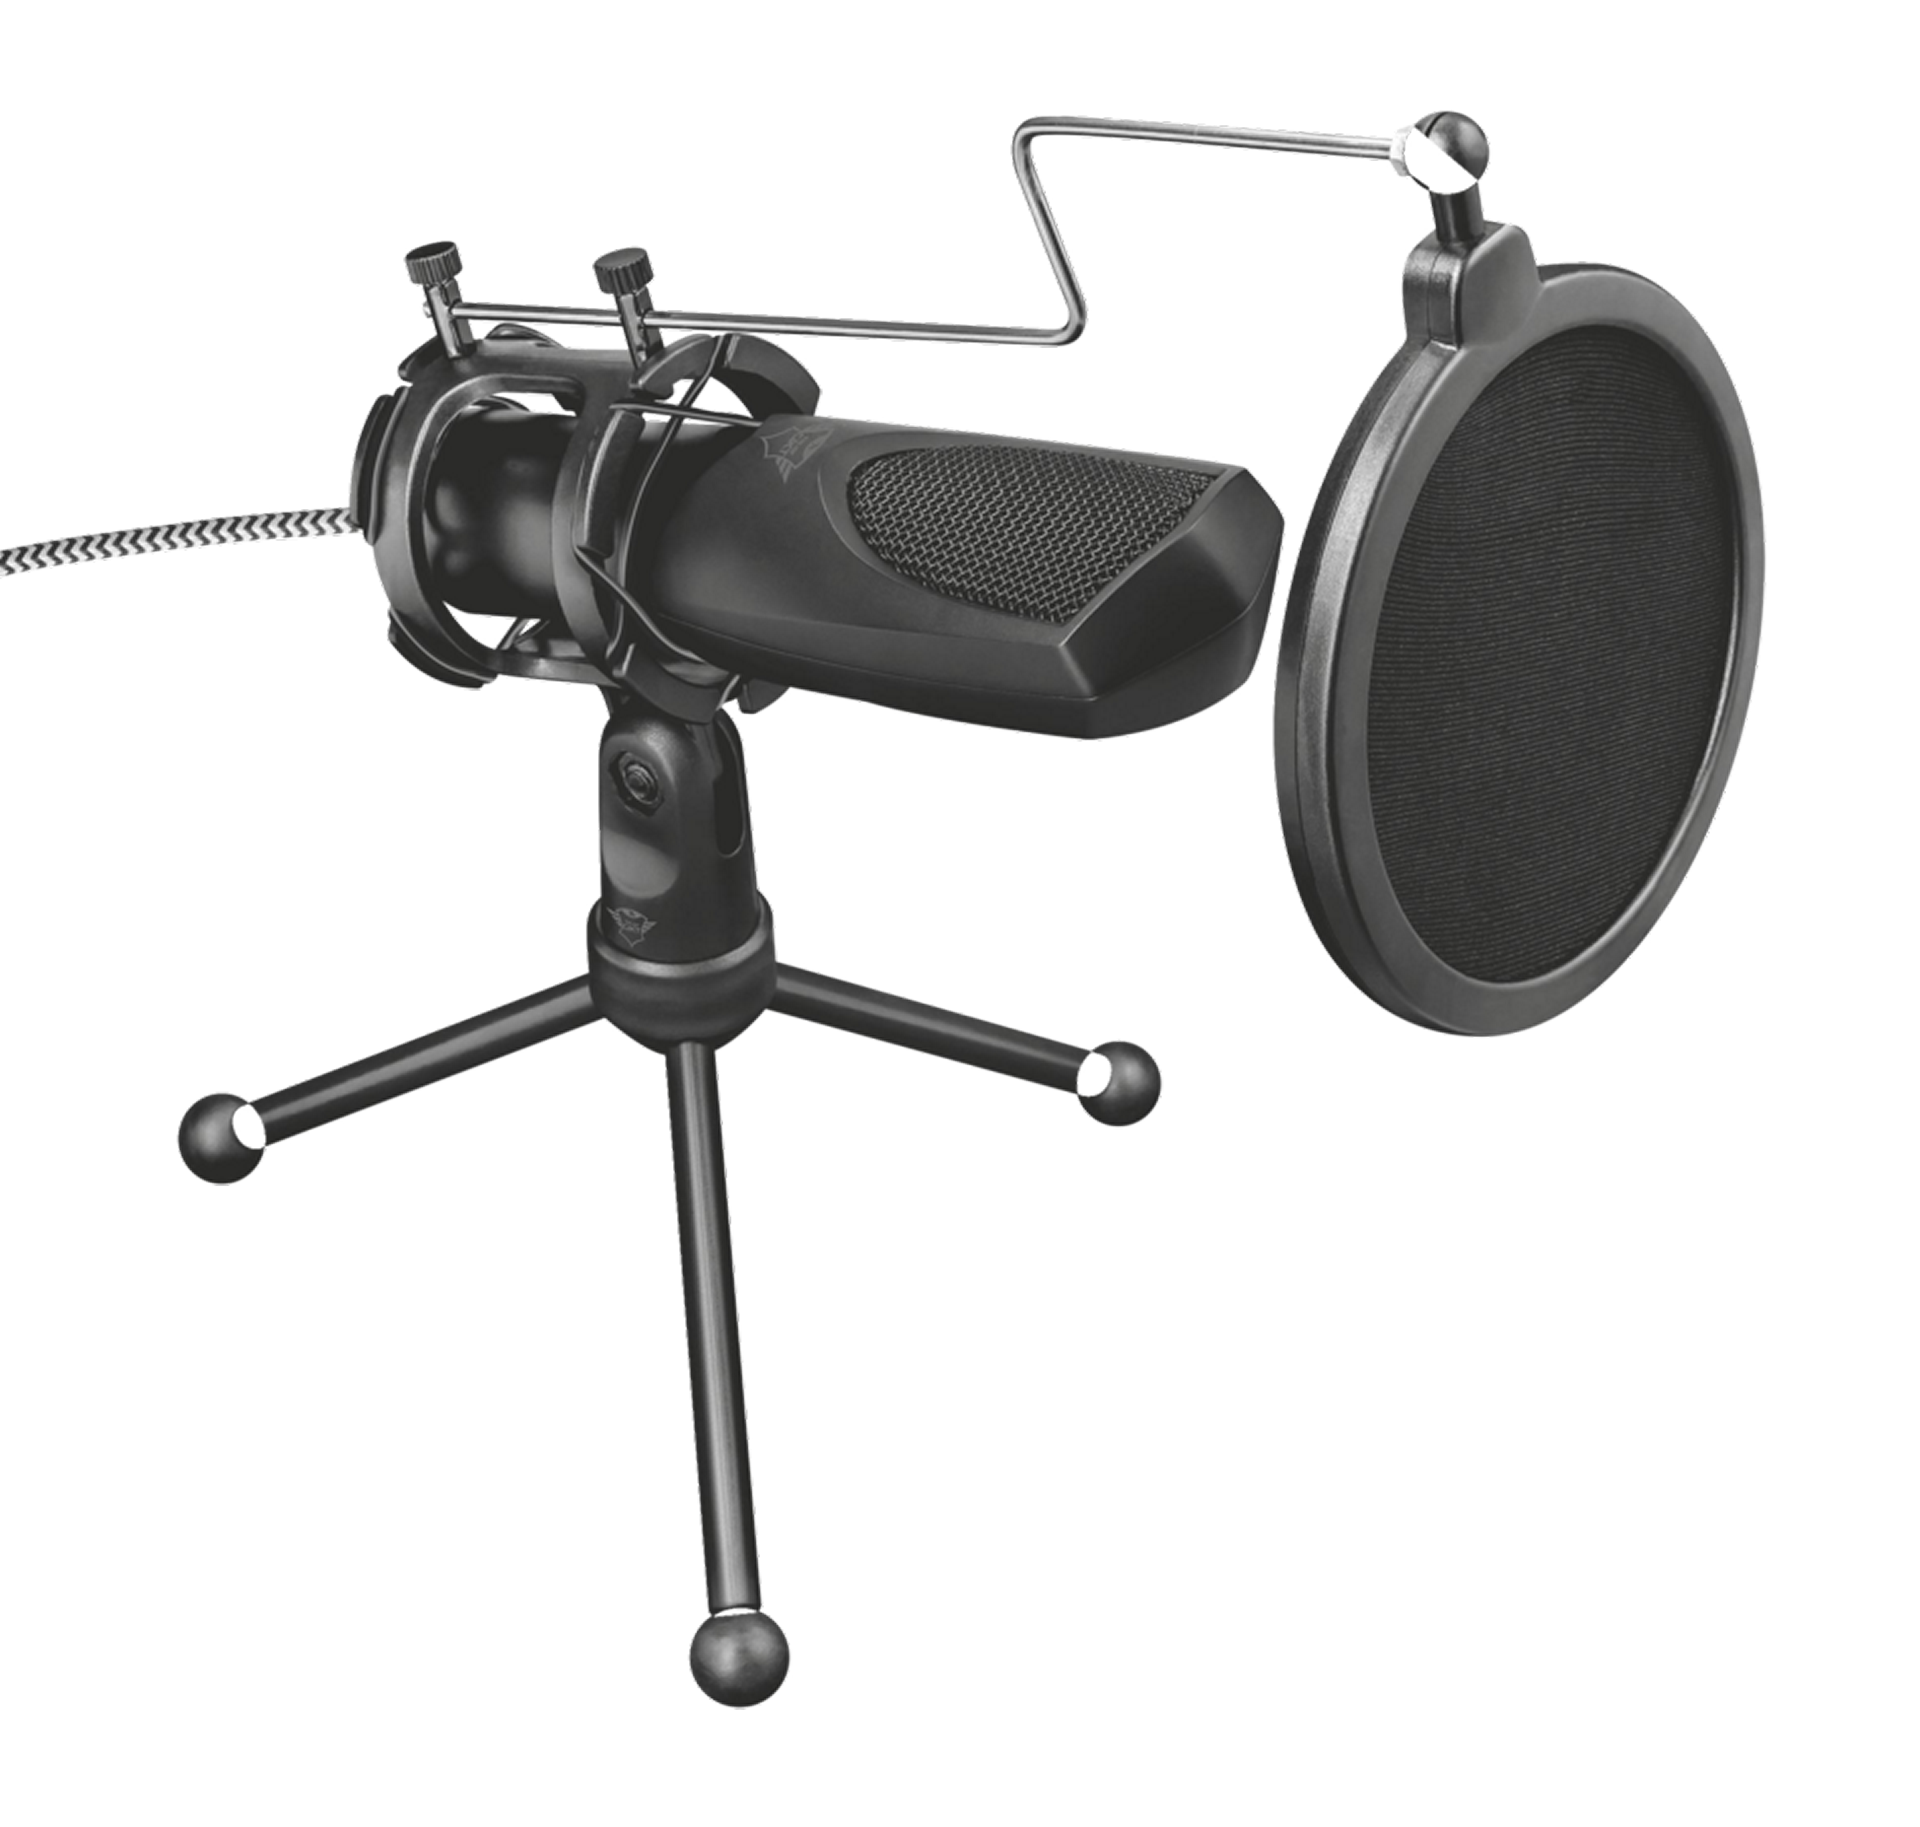 mikrofón TRUST GXT 232 Mantis Streaming Microphone - 22656